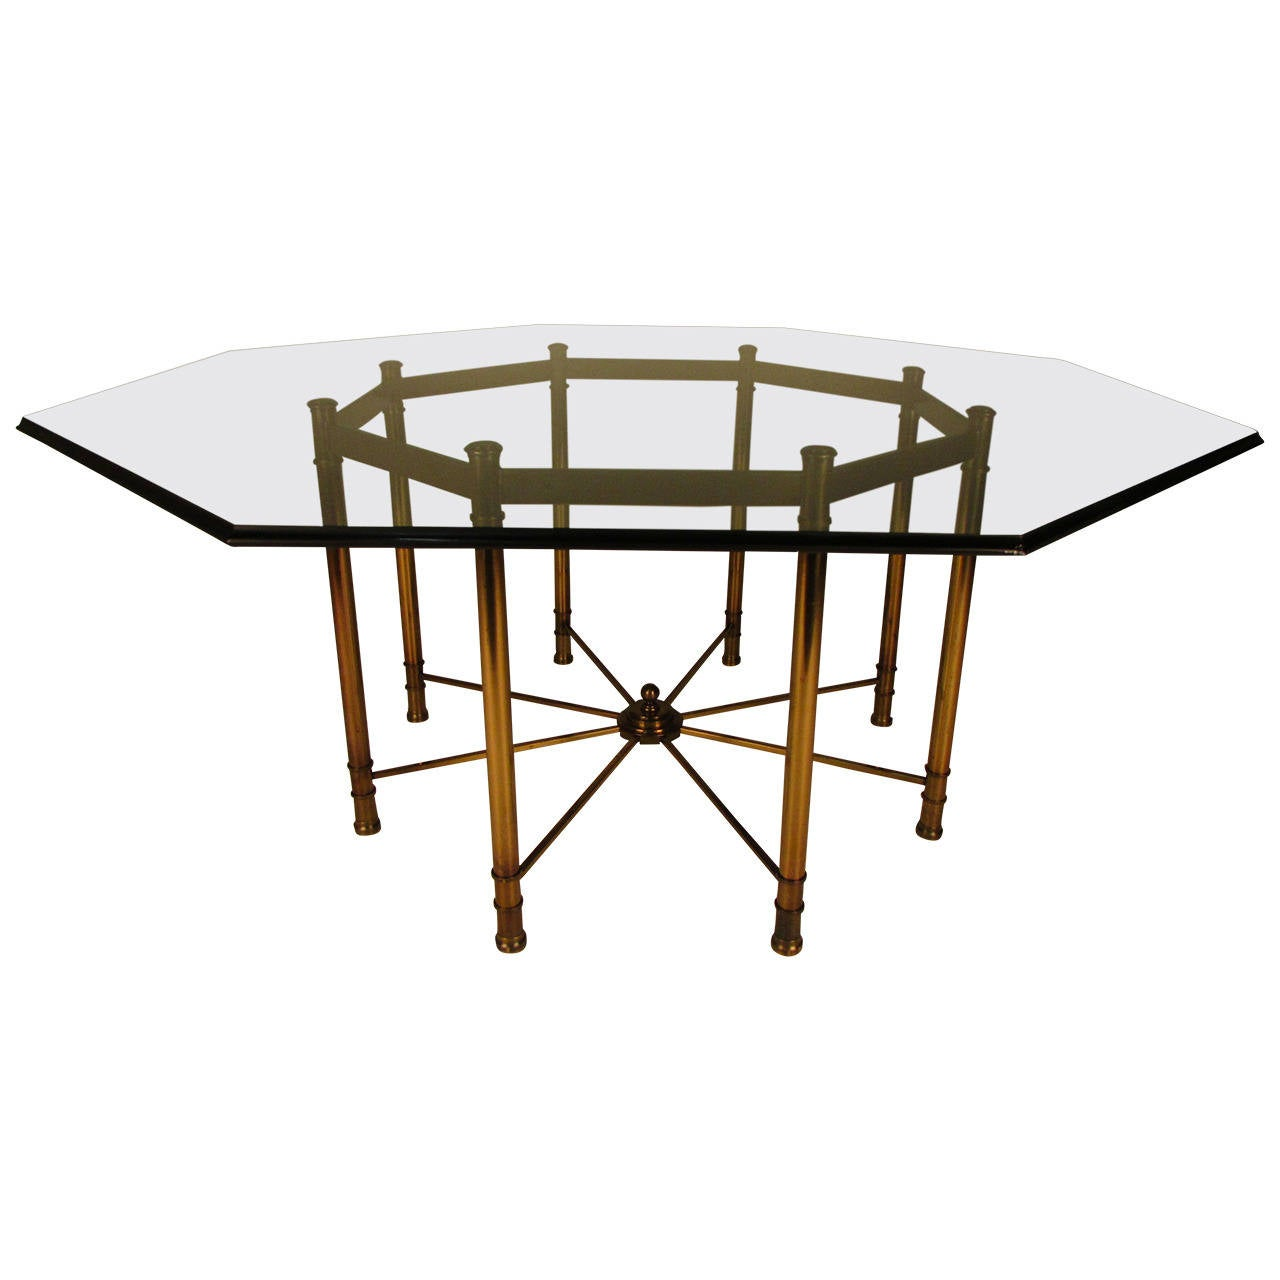 Mastercraft brass dining table - Impressive Mastercraft Octagonal Directoire Style Brass And Glass Dining Table 1